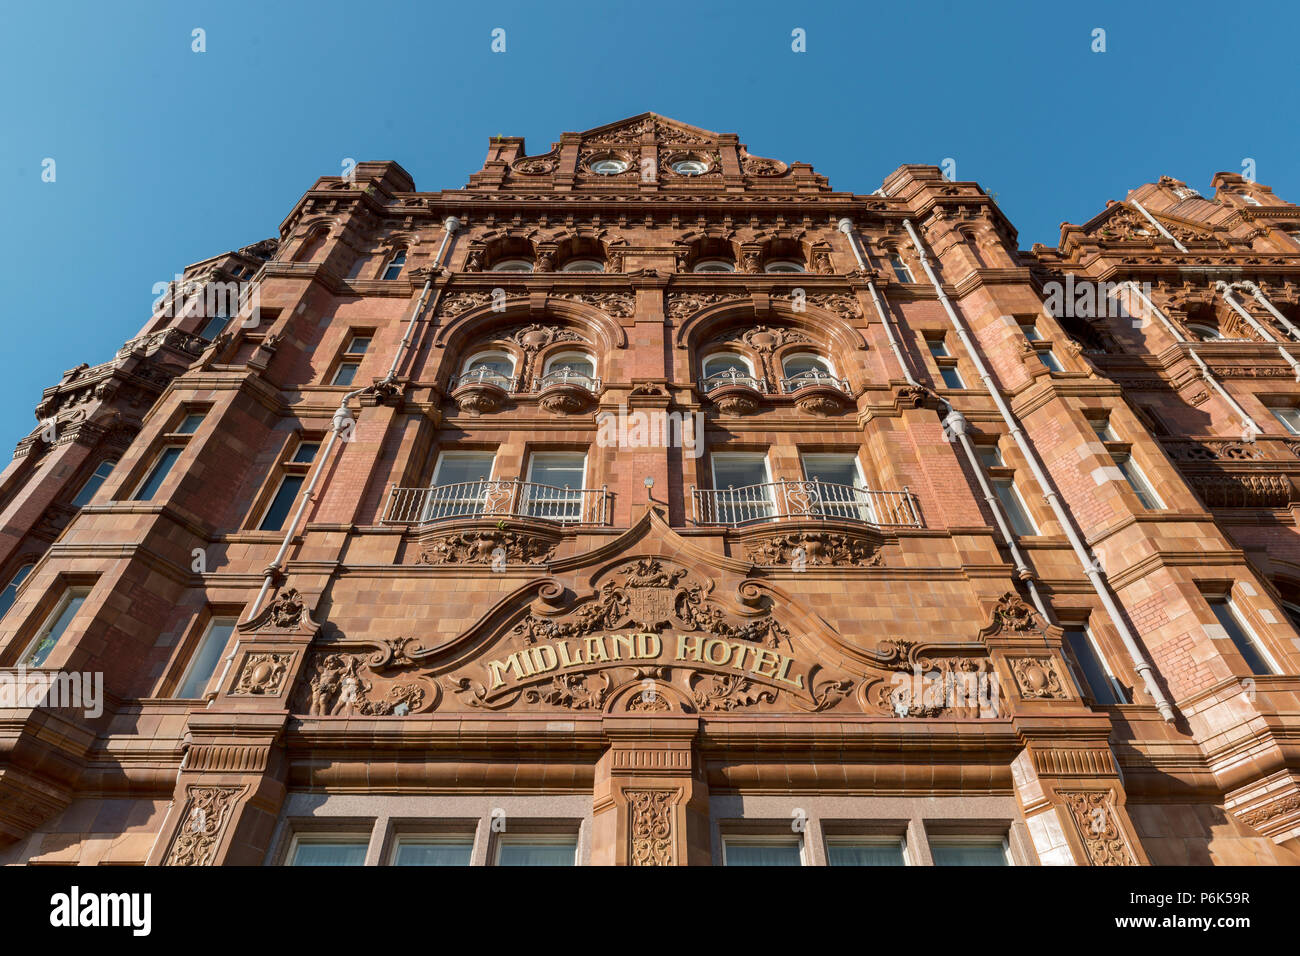 The rear of the Midland Hotel in Manchester. - Stock Image